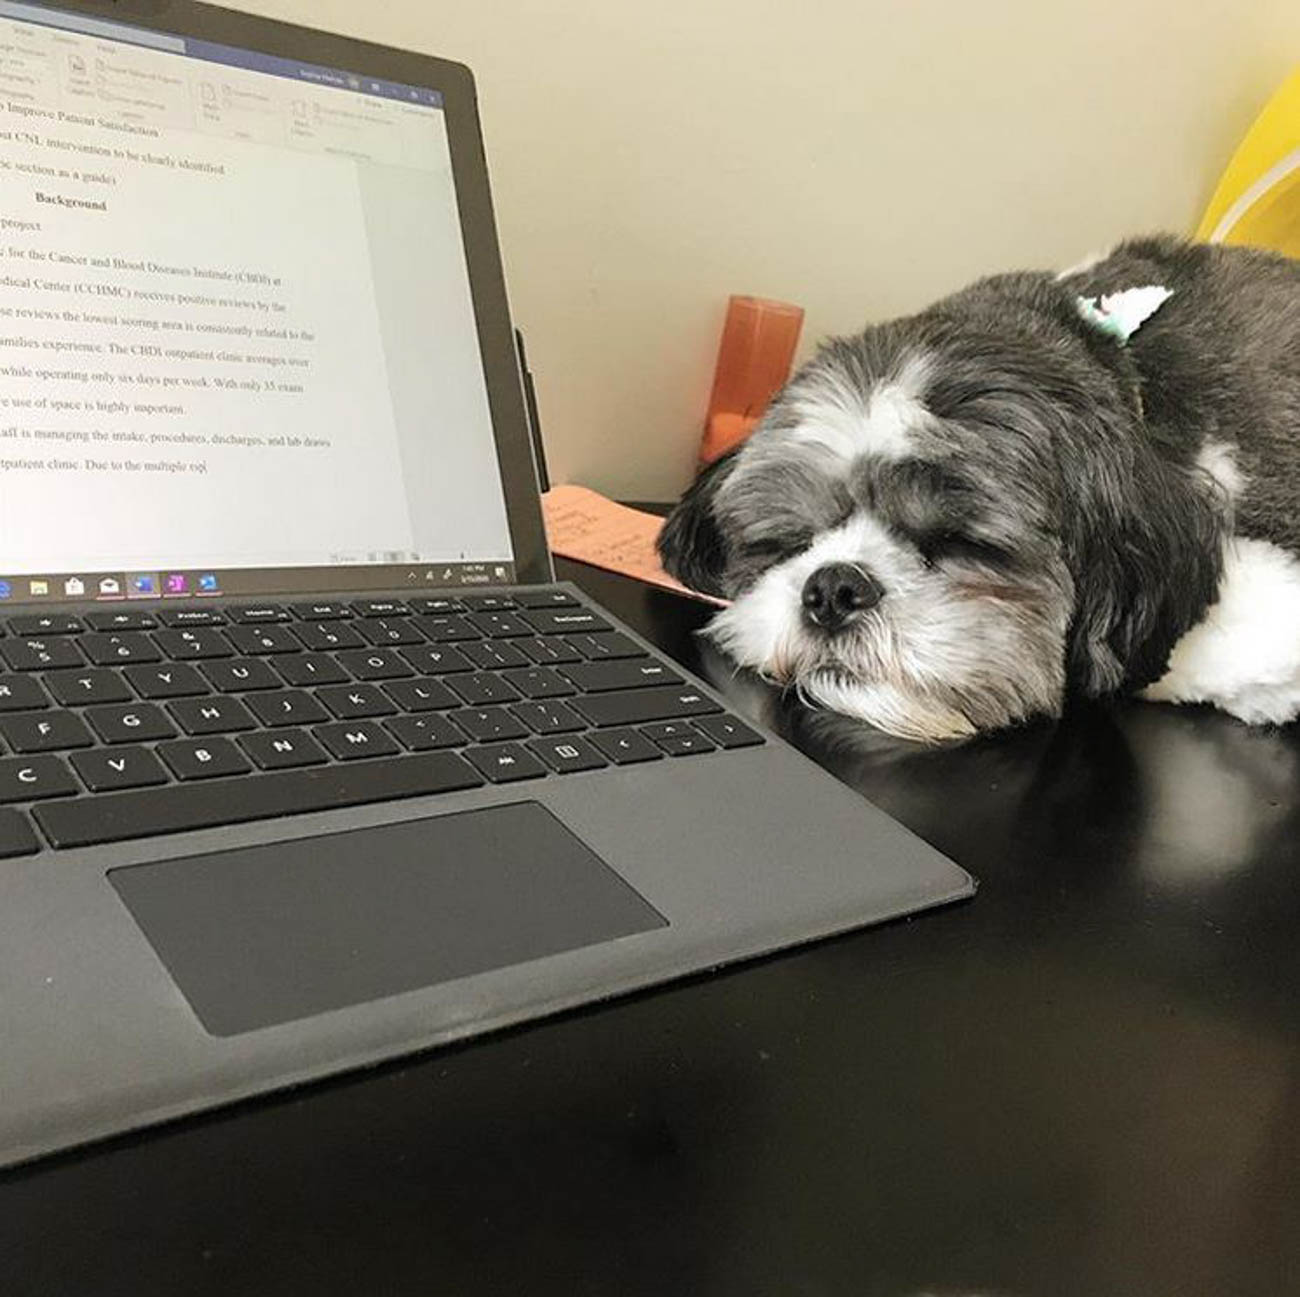 Proofreading the boss' documents / Image courtesy of Instagram user @louisdoggie // Published: 4.1.20